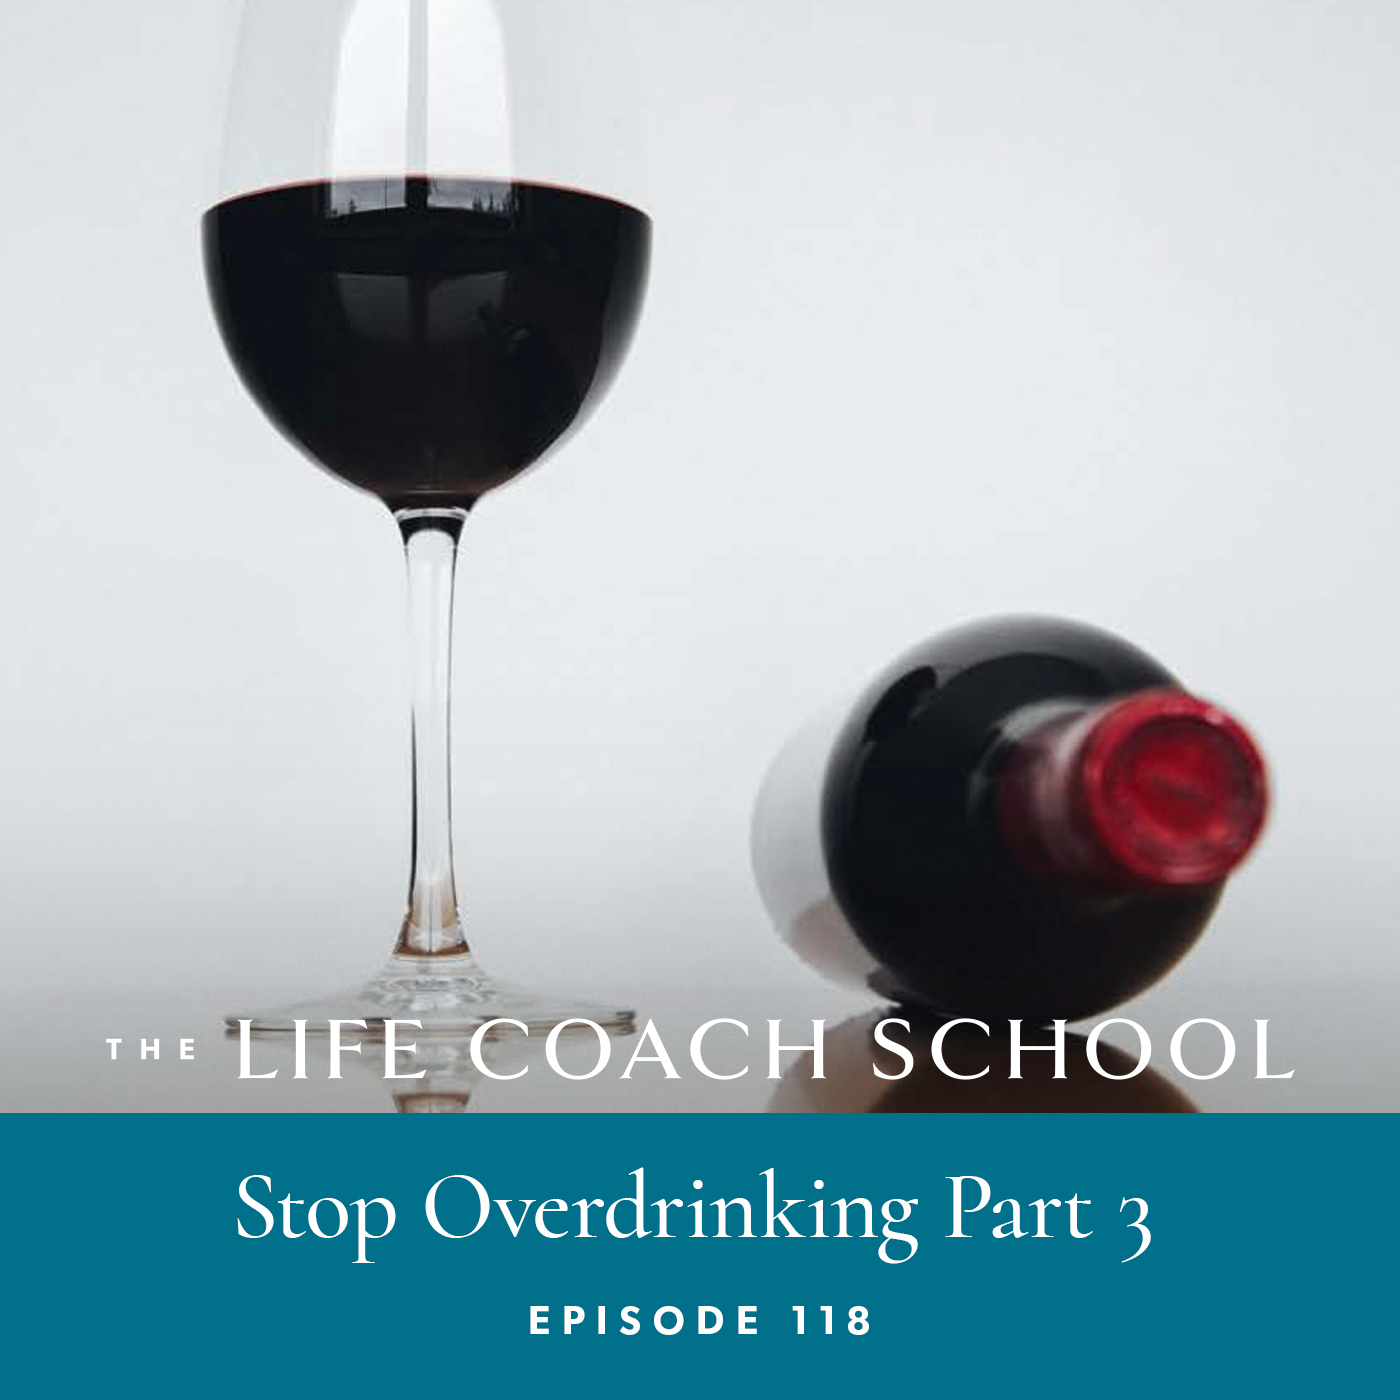 The Life Coach School Podcast with Brooke Castillo | Episode 118 | Stop Overdrinking Part 3